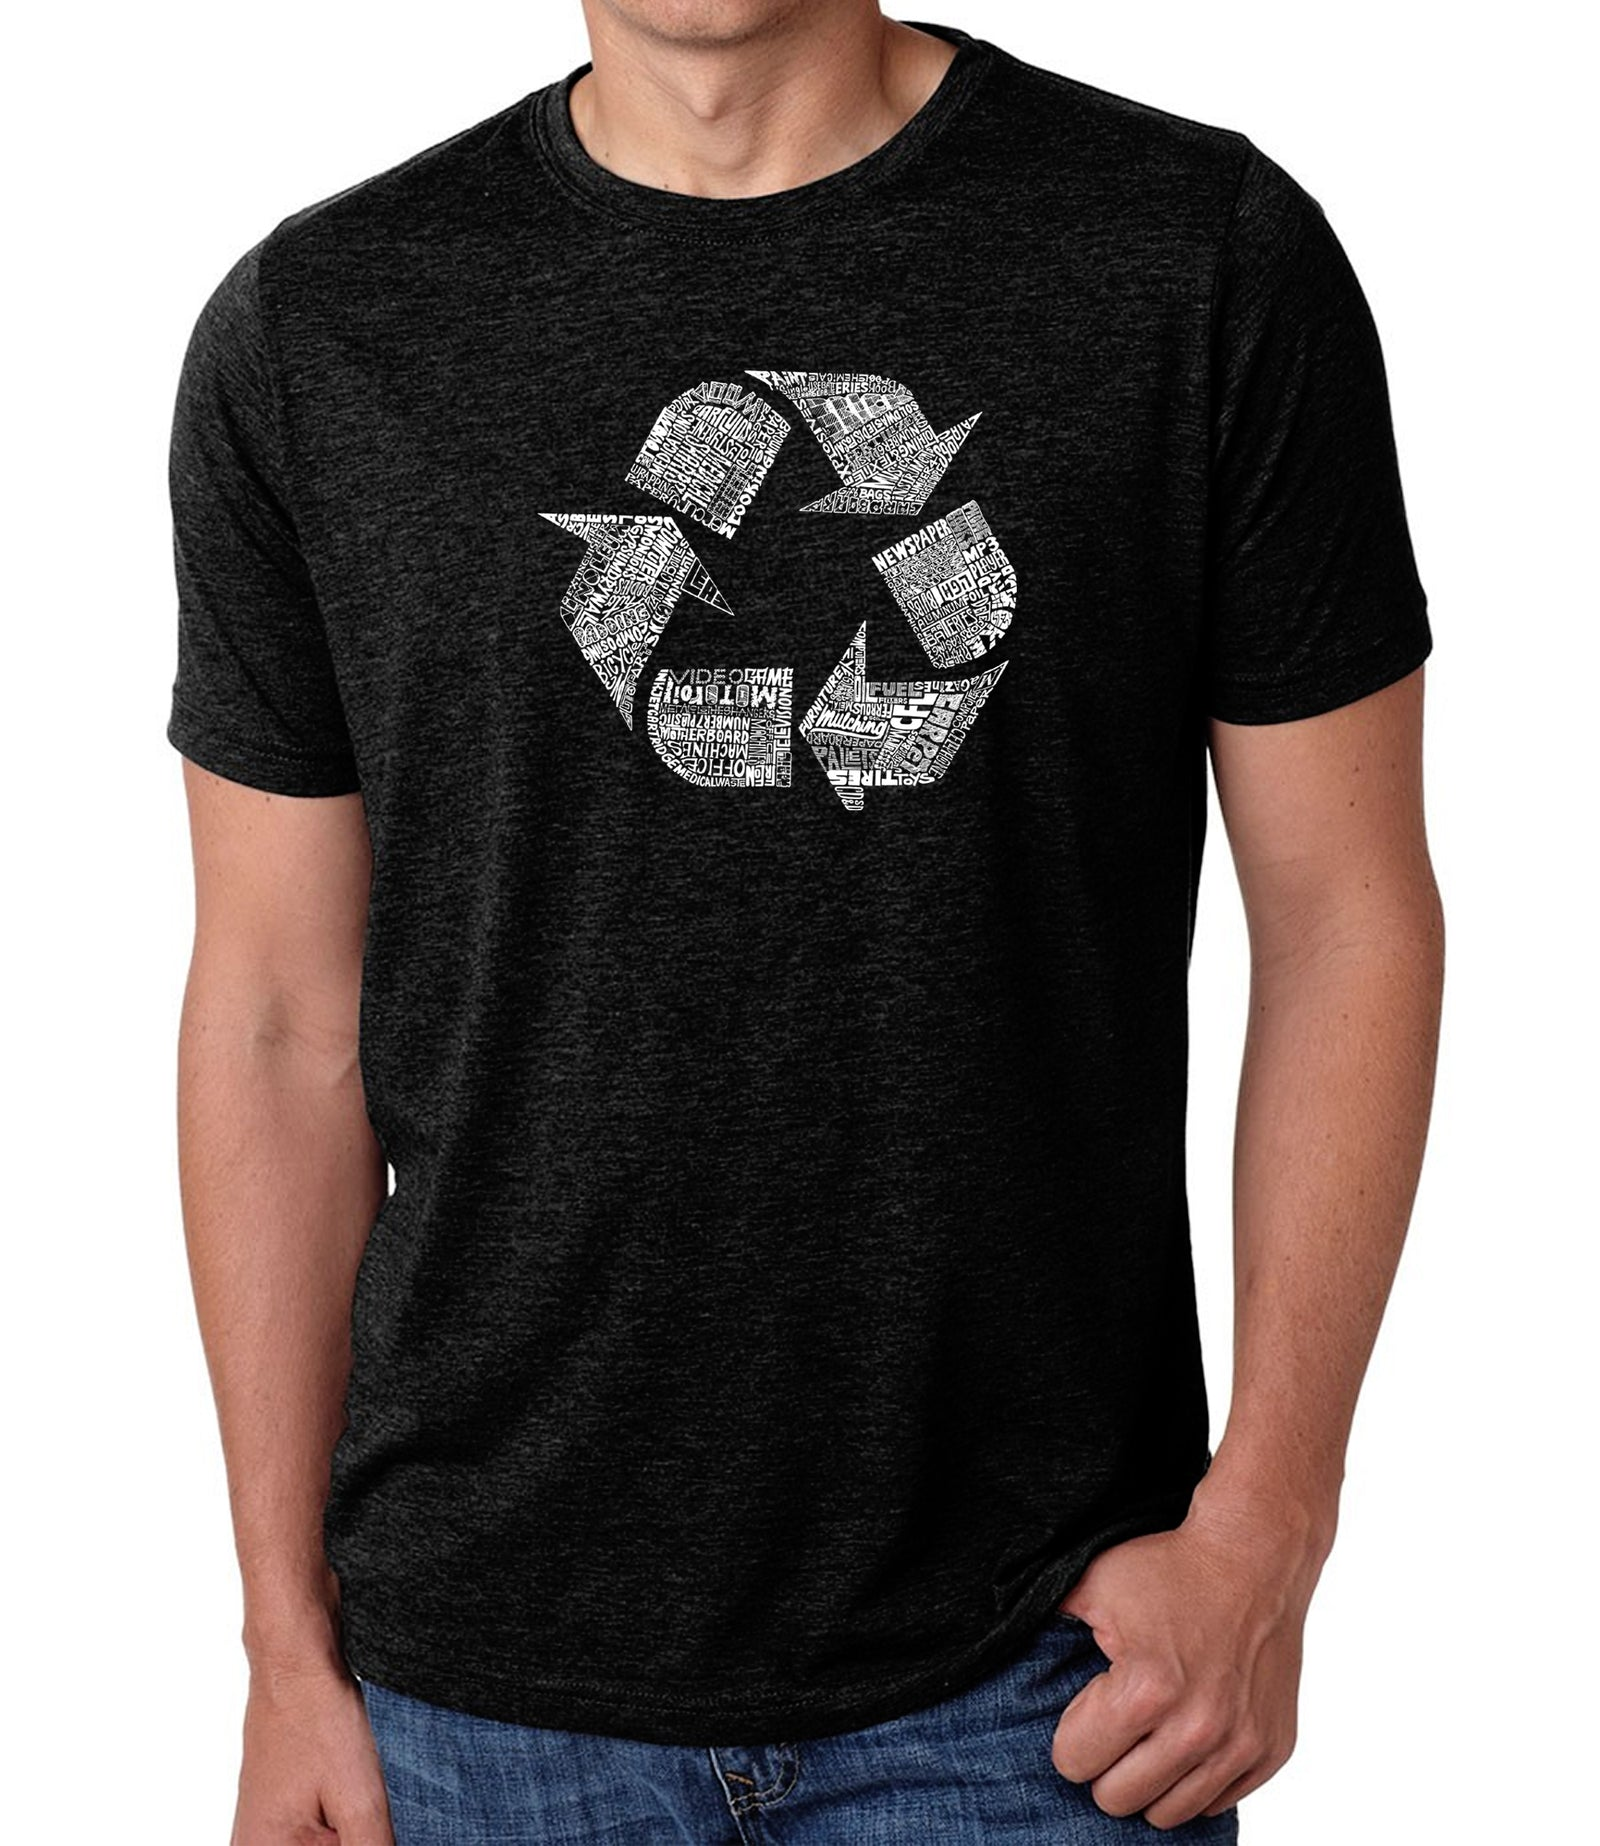 Men's Premium Blend Word Art T-shirt - 86 RECYCLABLE PRODUCTS